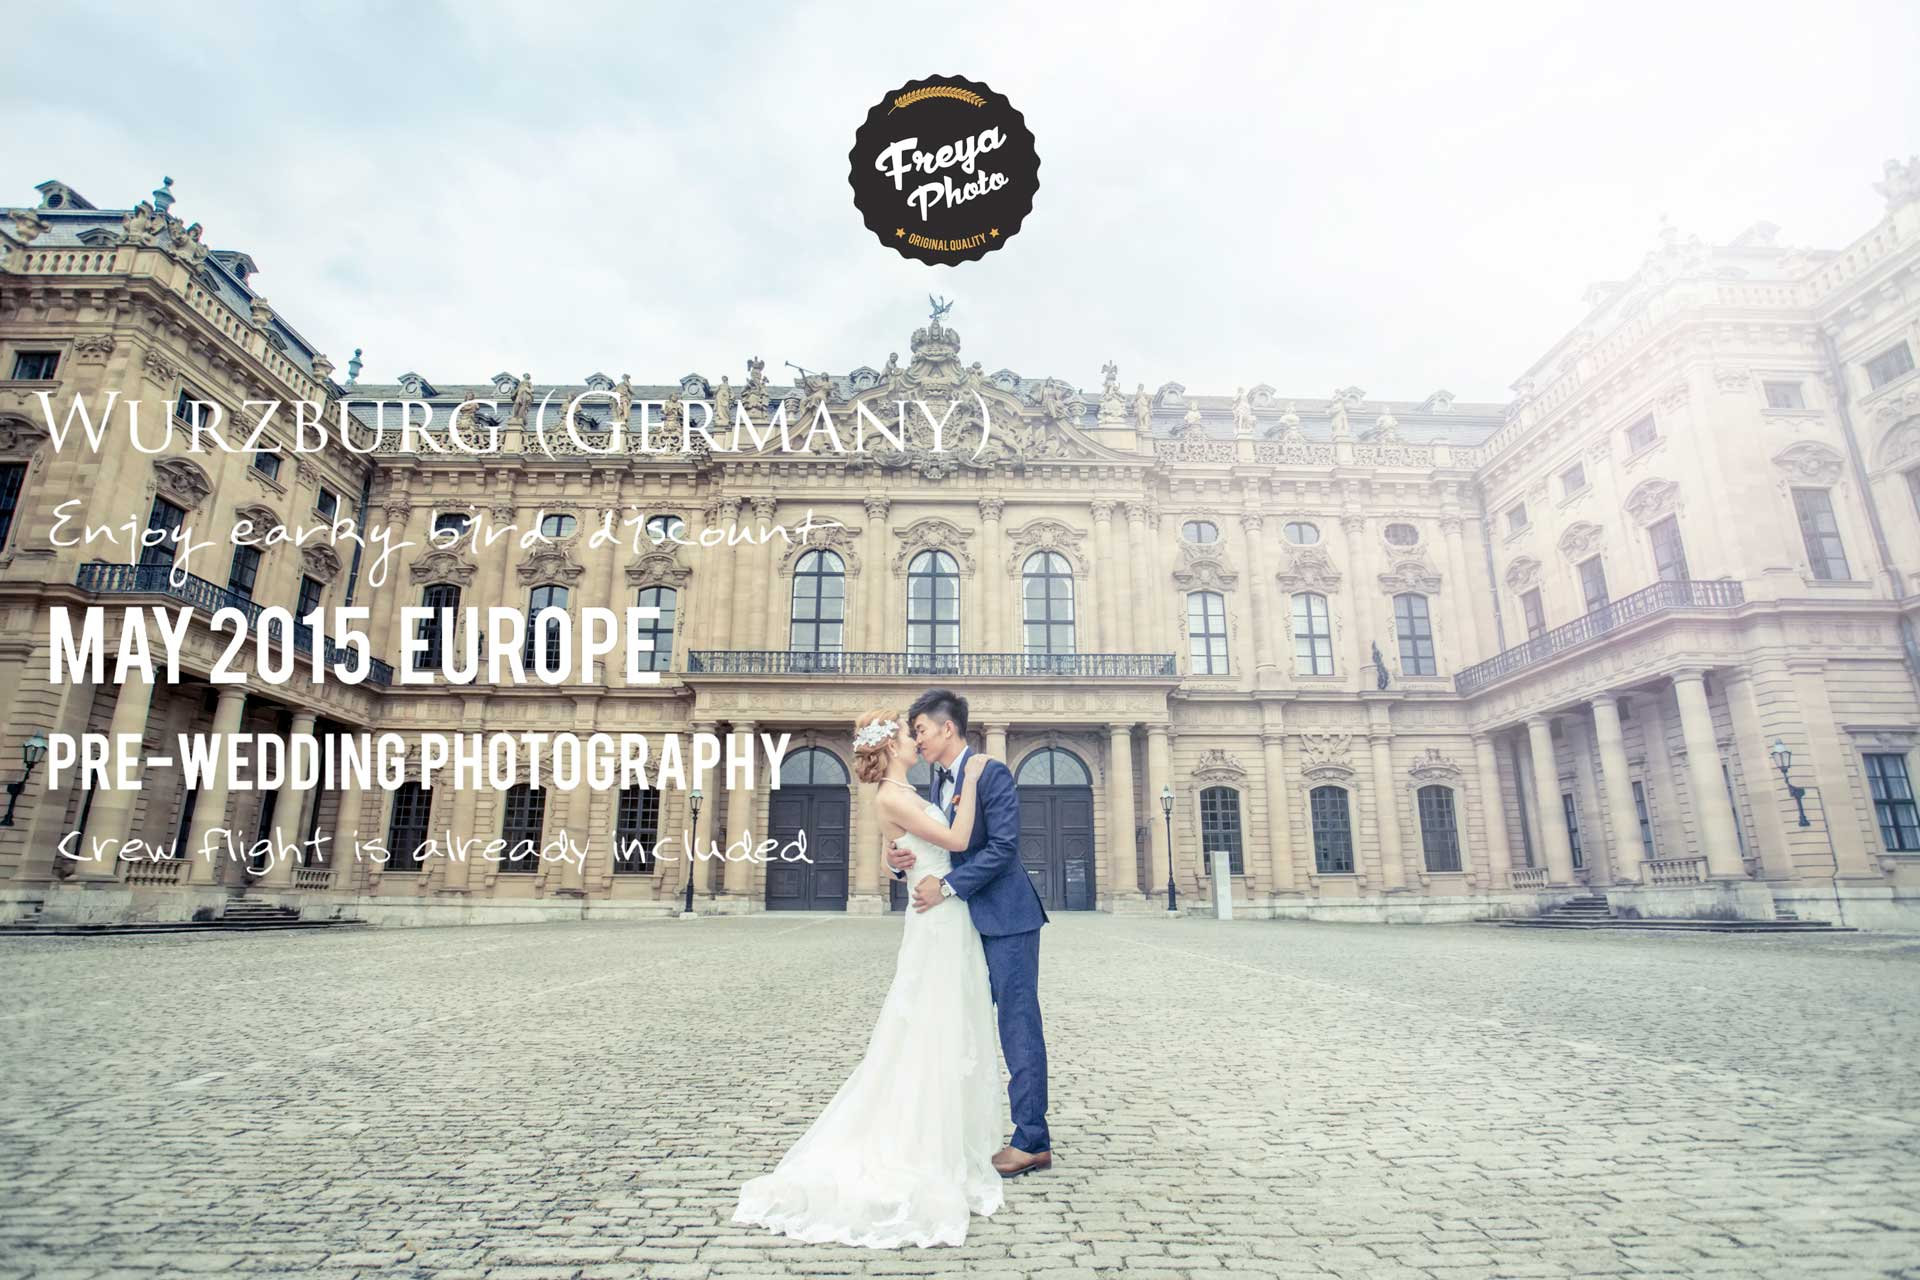 europe-pre-wedding-wurzburg